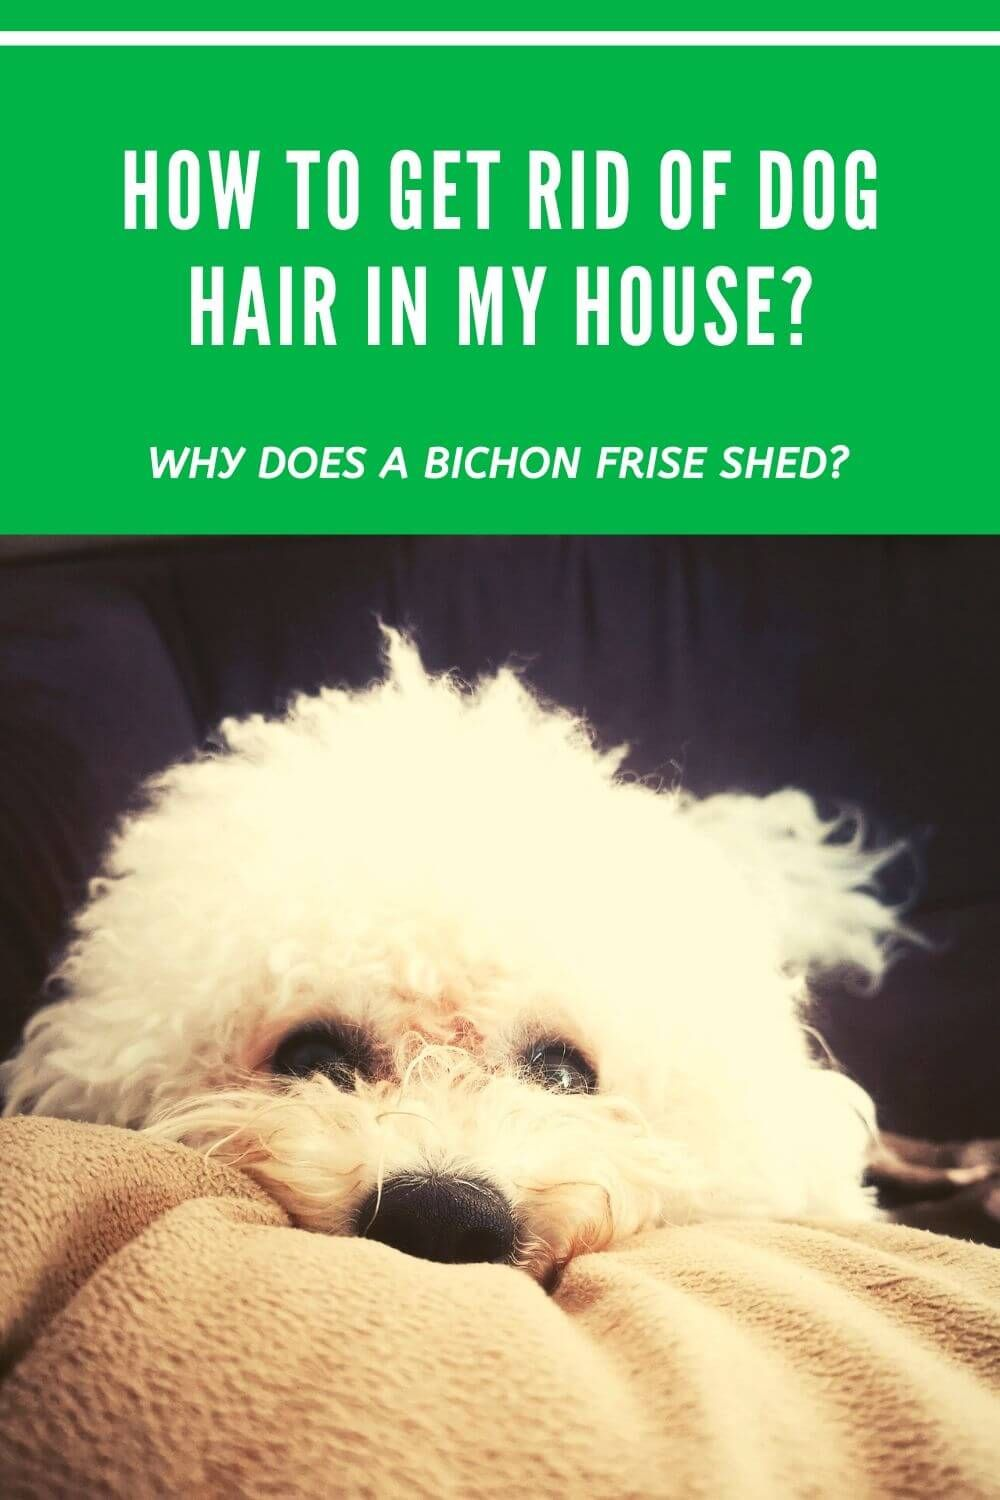 b7950fd7bd7b4be52d18c5010c6f0d73 - How To Get Rid Of Dog Fur In House